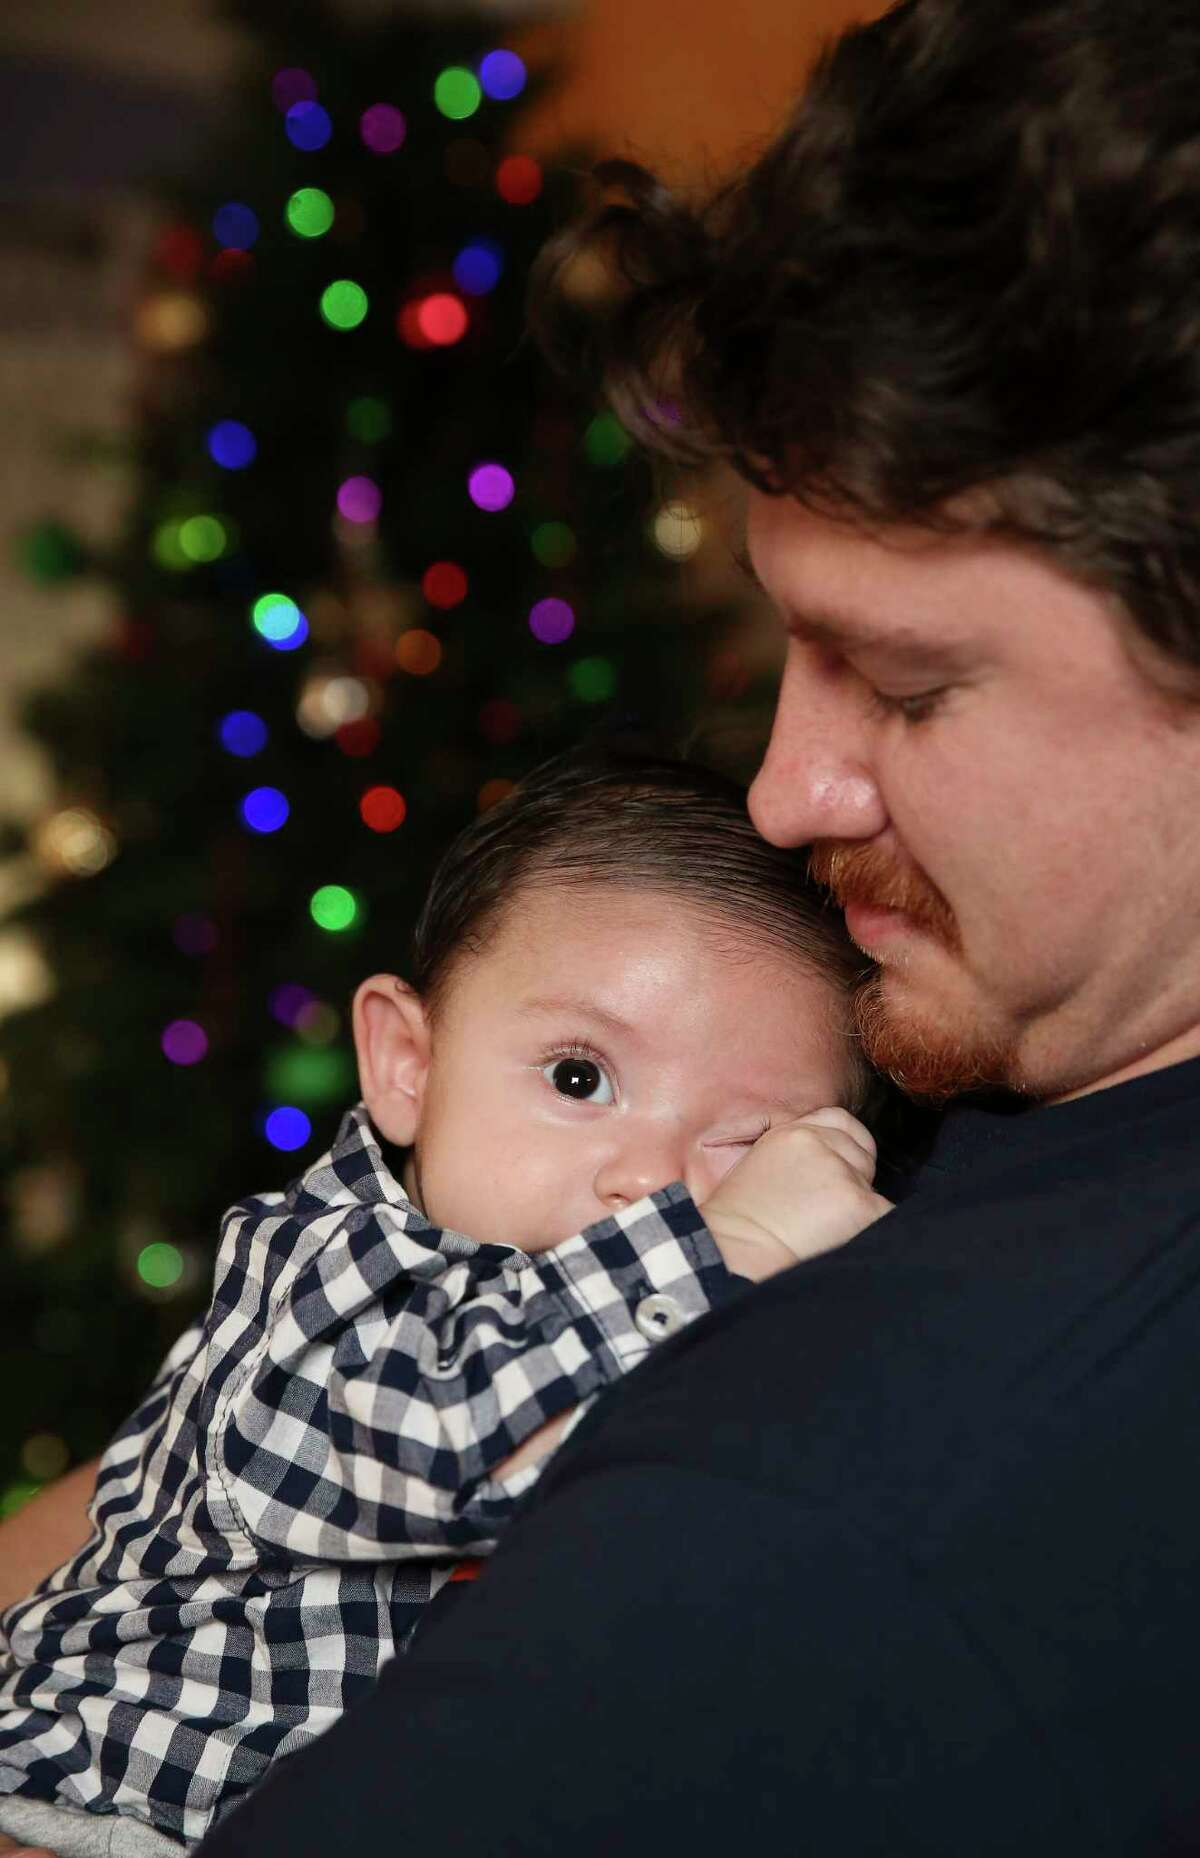 Michael Cassidy, 26, tends his sleepy two-month-old son, Azrael Cassidy, while posing for a portrait on Sunday, Dec. 10, 2017, in Houston. A special medical tourniquet device saved Cassidy when he was involved in a bad motorcycle accident back in March, and now he would be celebrating Christmas with his fiance, Alexis Garcia, 22, and their new family.